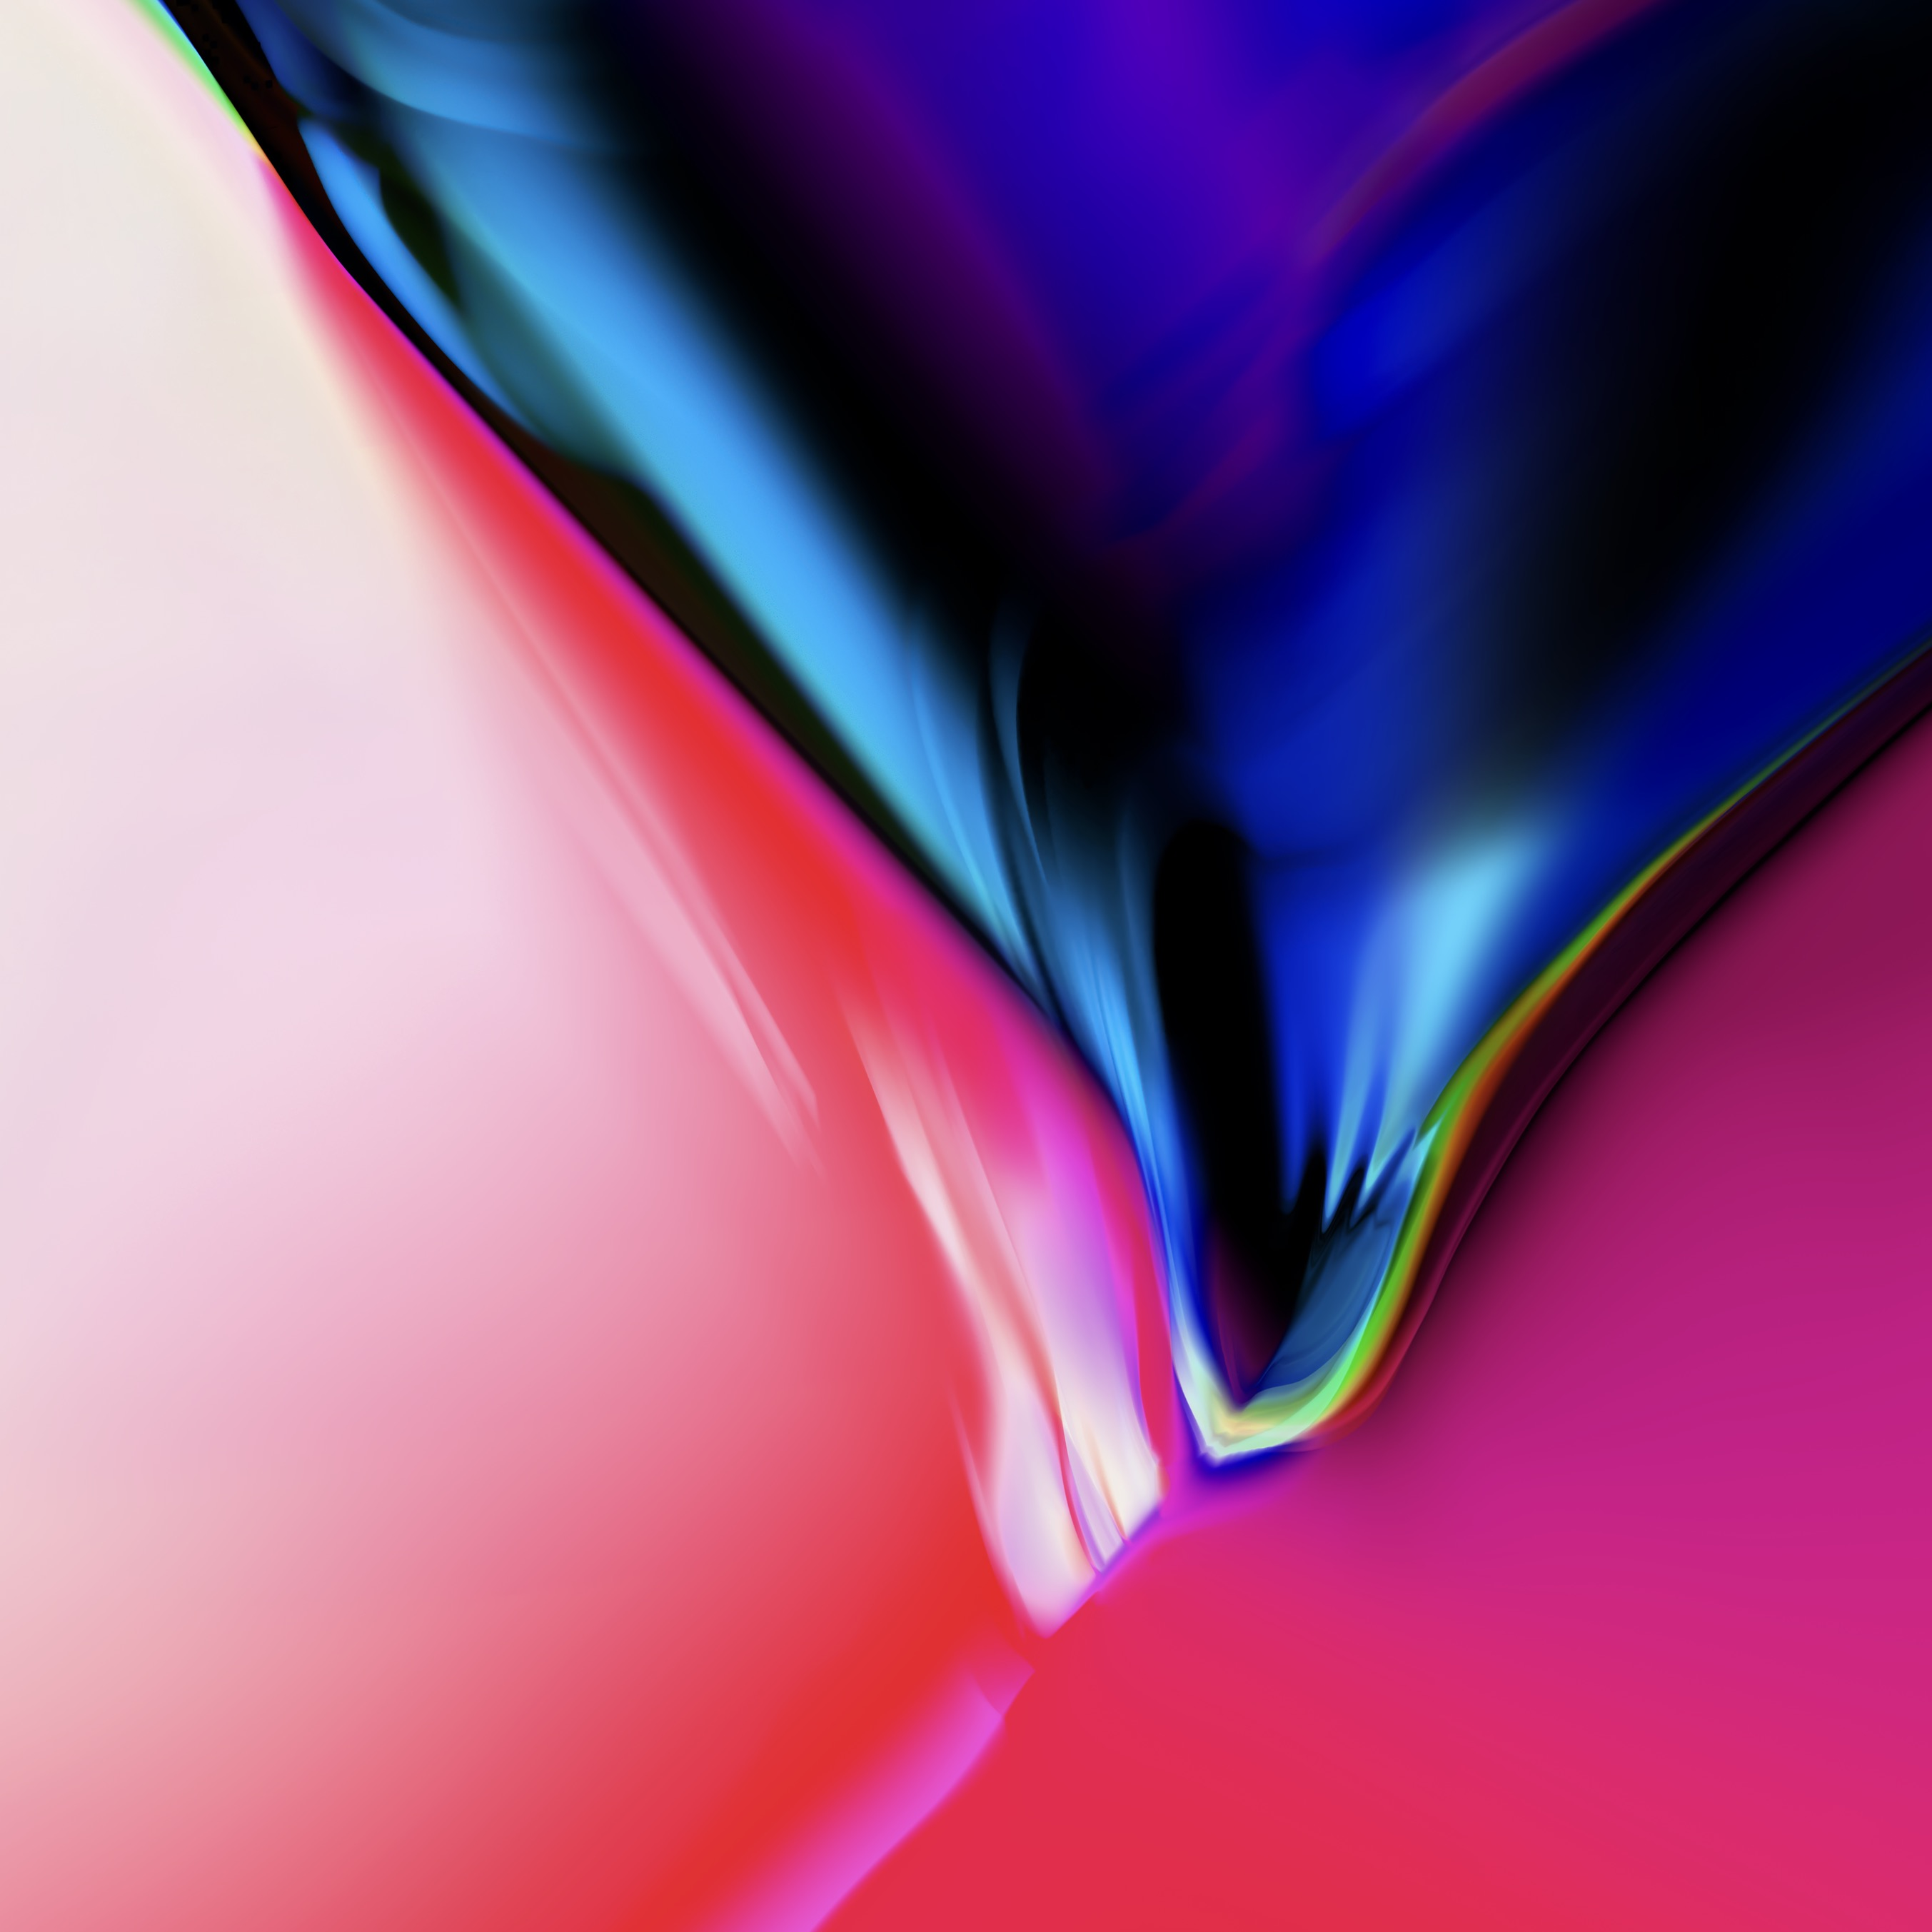 Download the new iOS 11 wallpapers 2706x2706